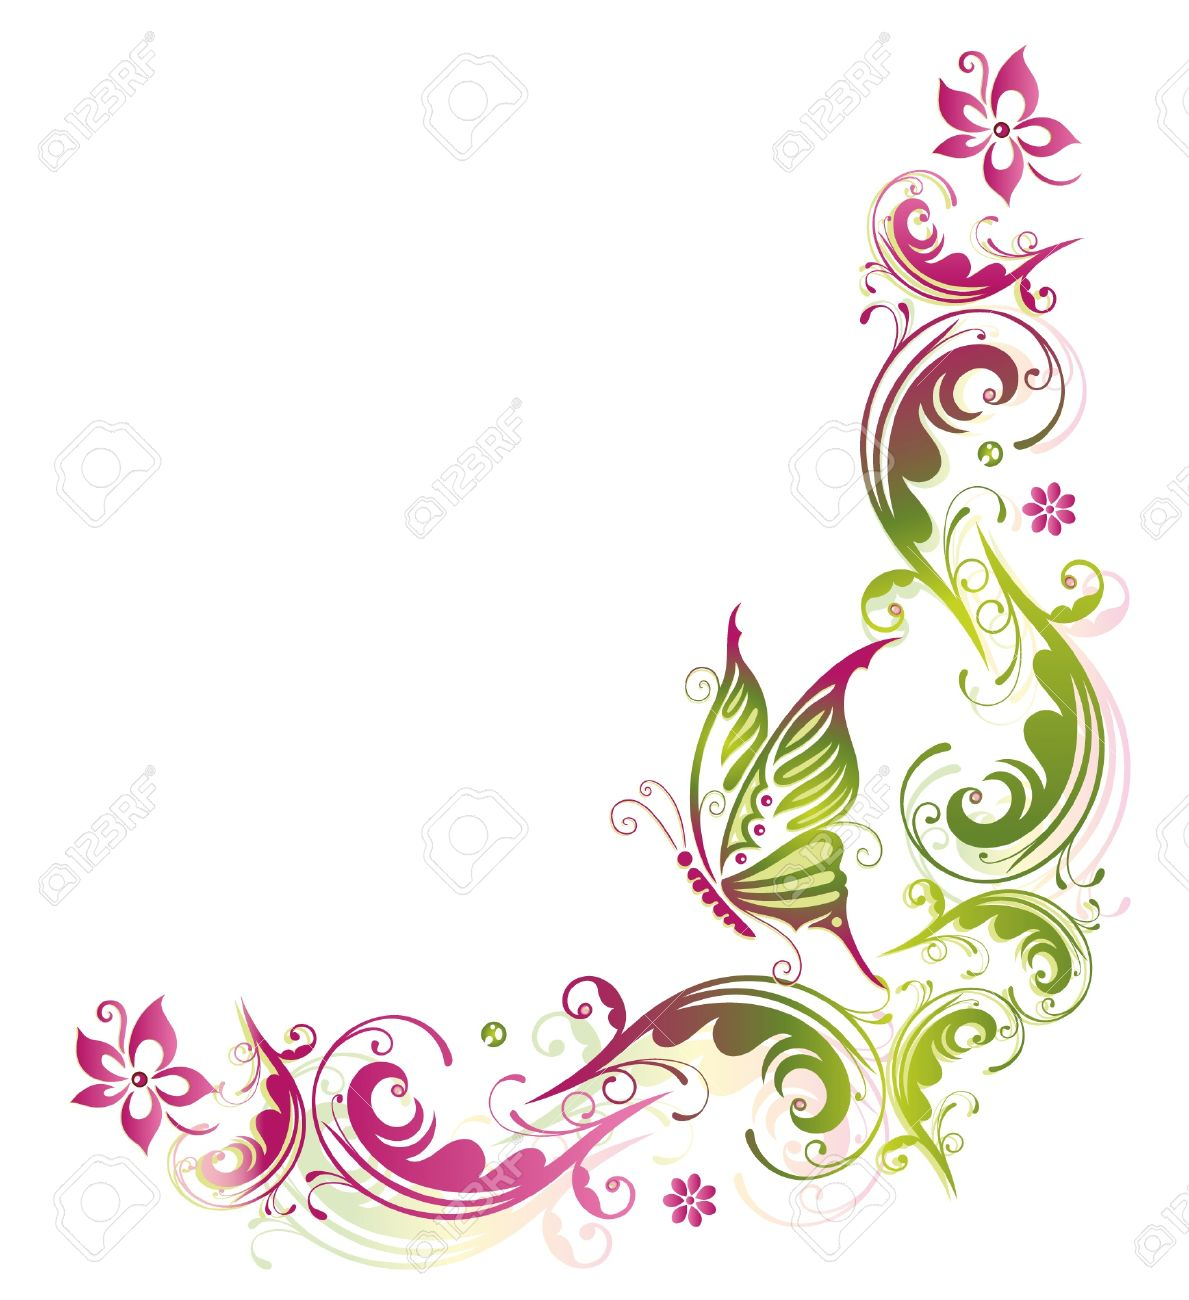 flower, summer, butterfly, green, pink royalty free cliparts